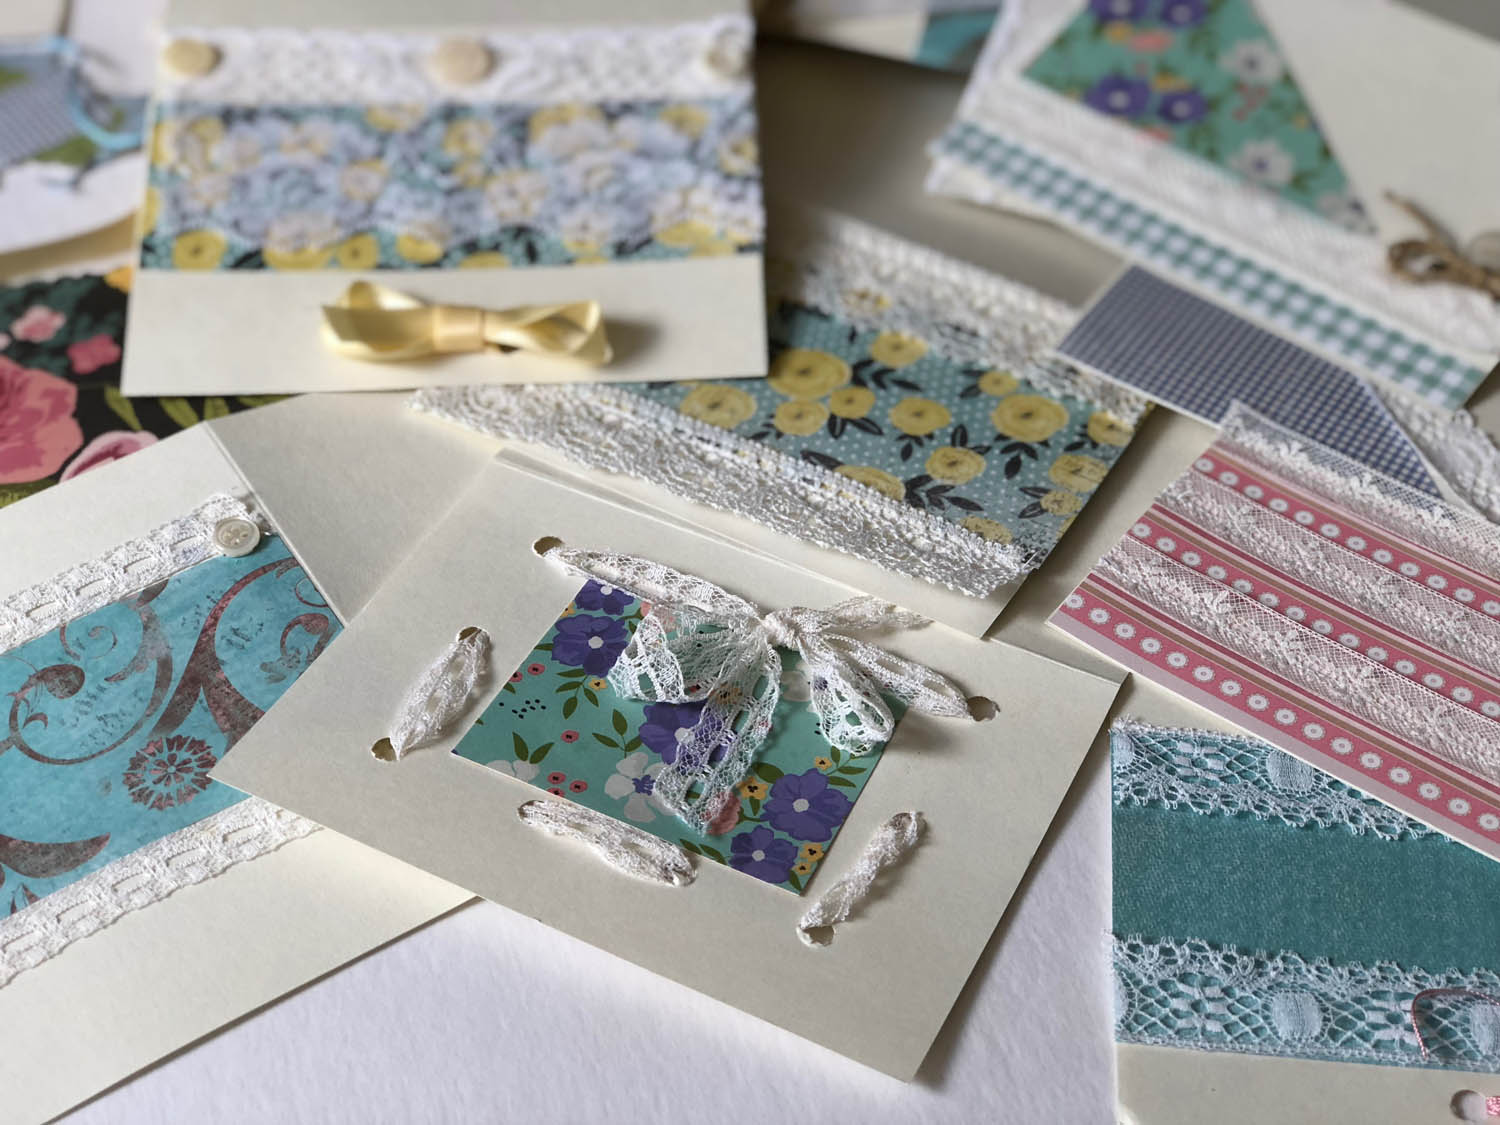 Finished handmade cards with Charlotte's lace